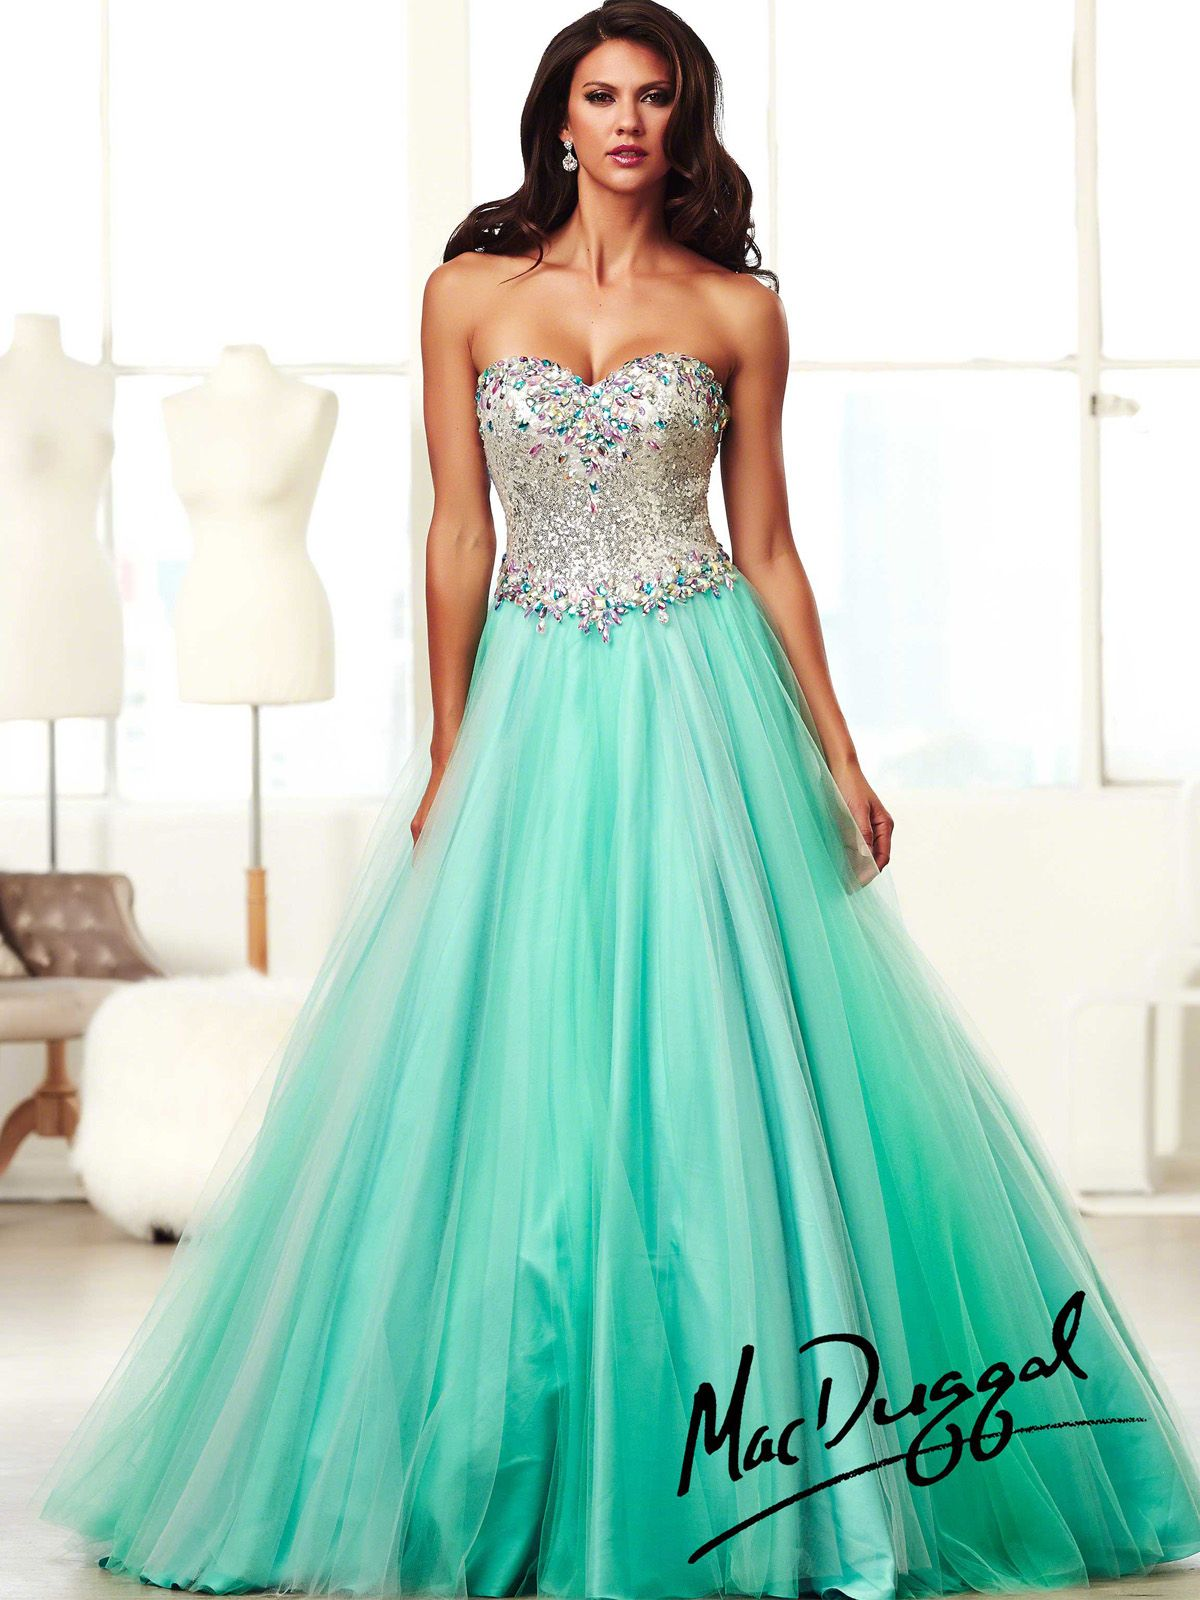 You will make an unforgettable entrance in this mac duggal ball gown